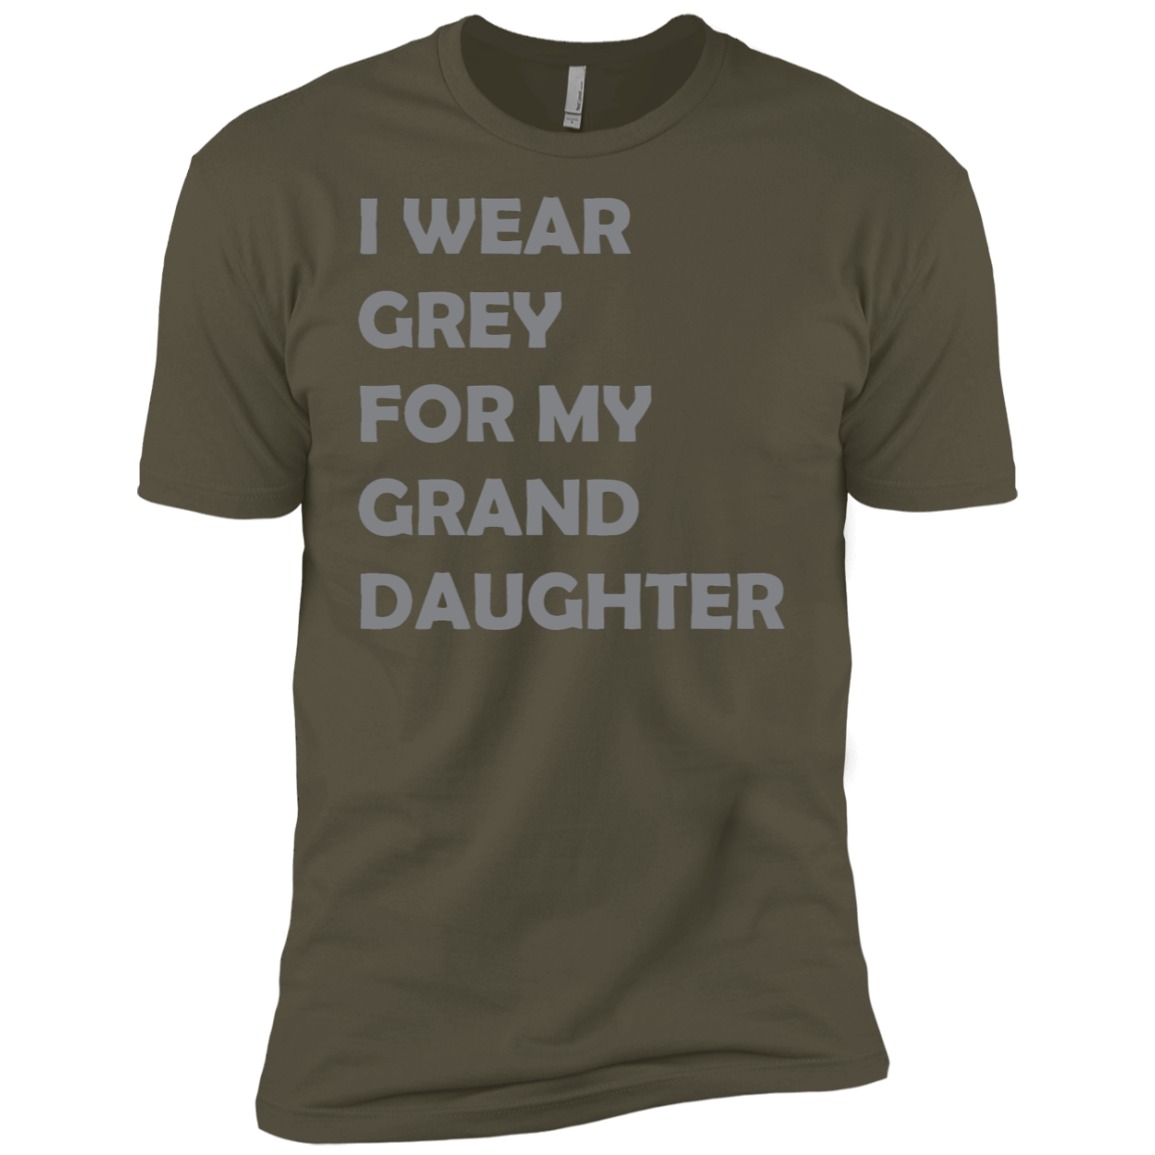 I Wear Grey For My Grand Daughter Men's Classic Tee